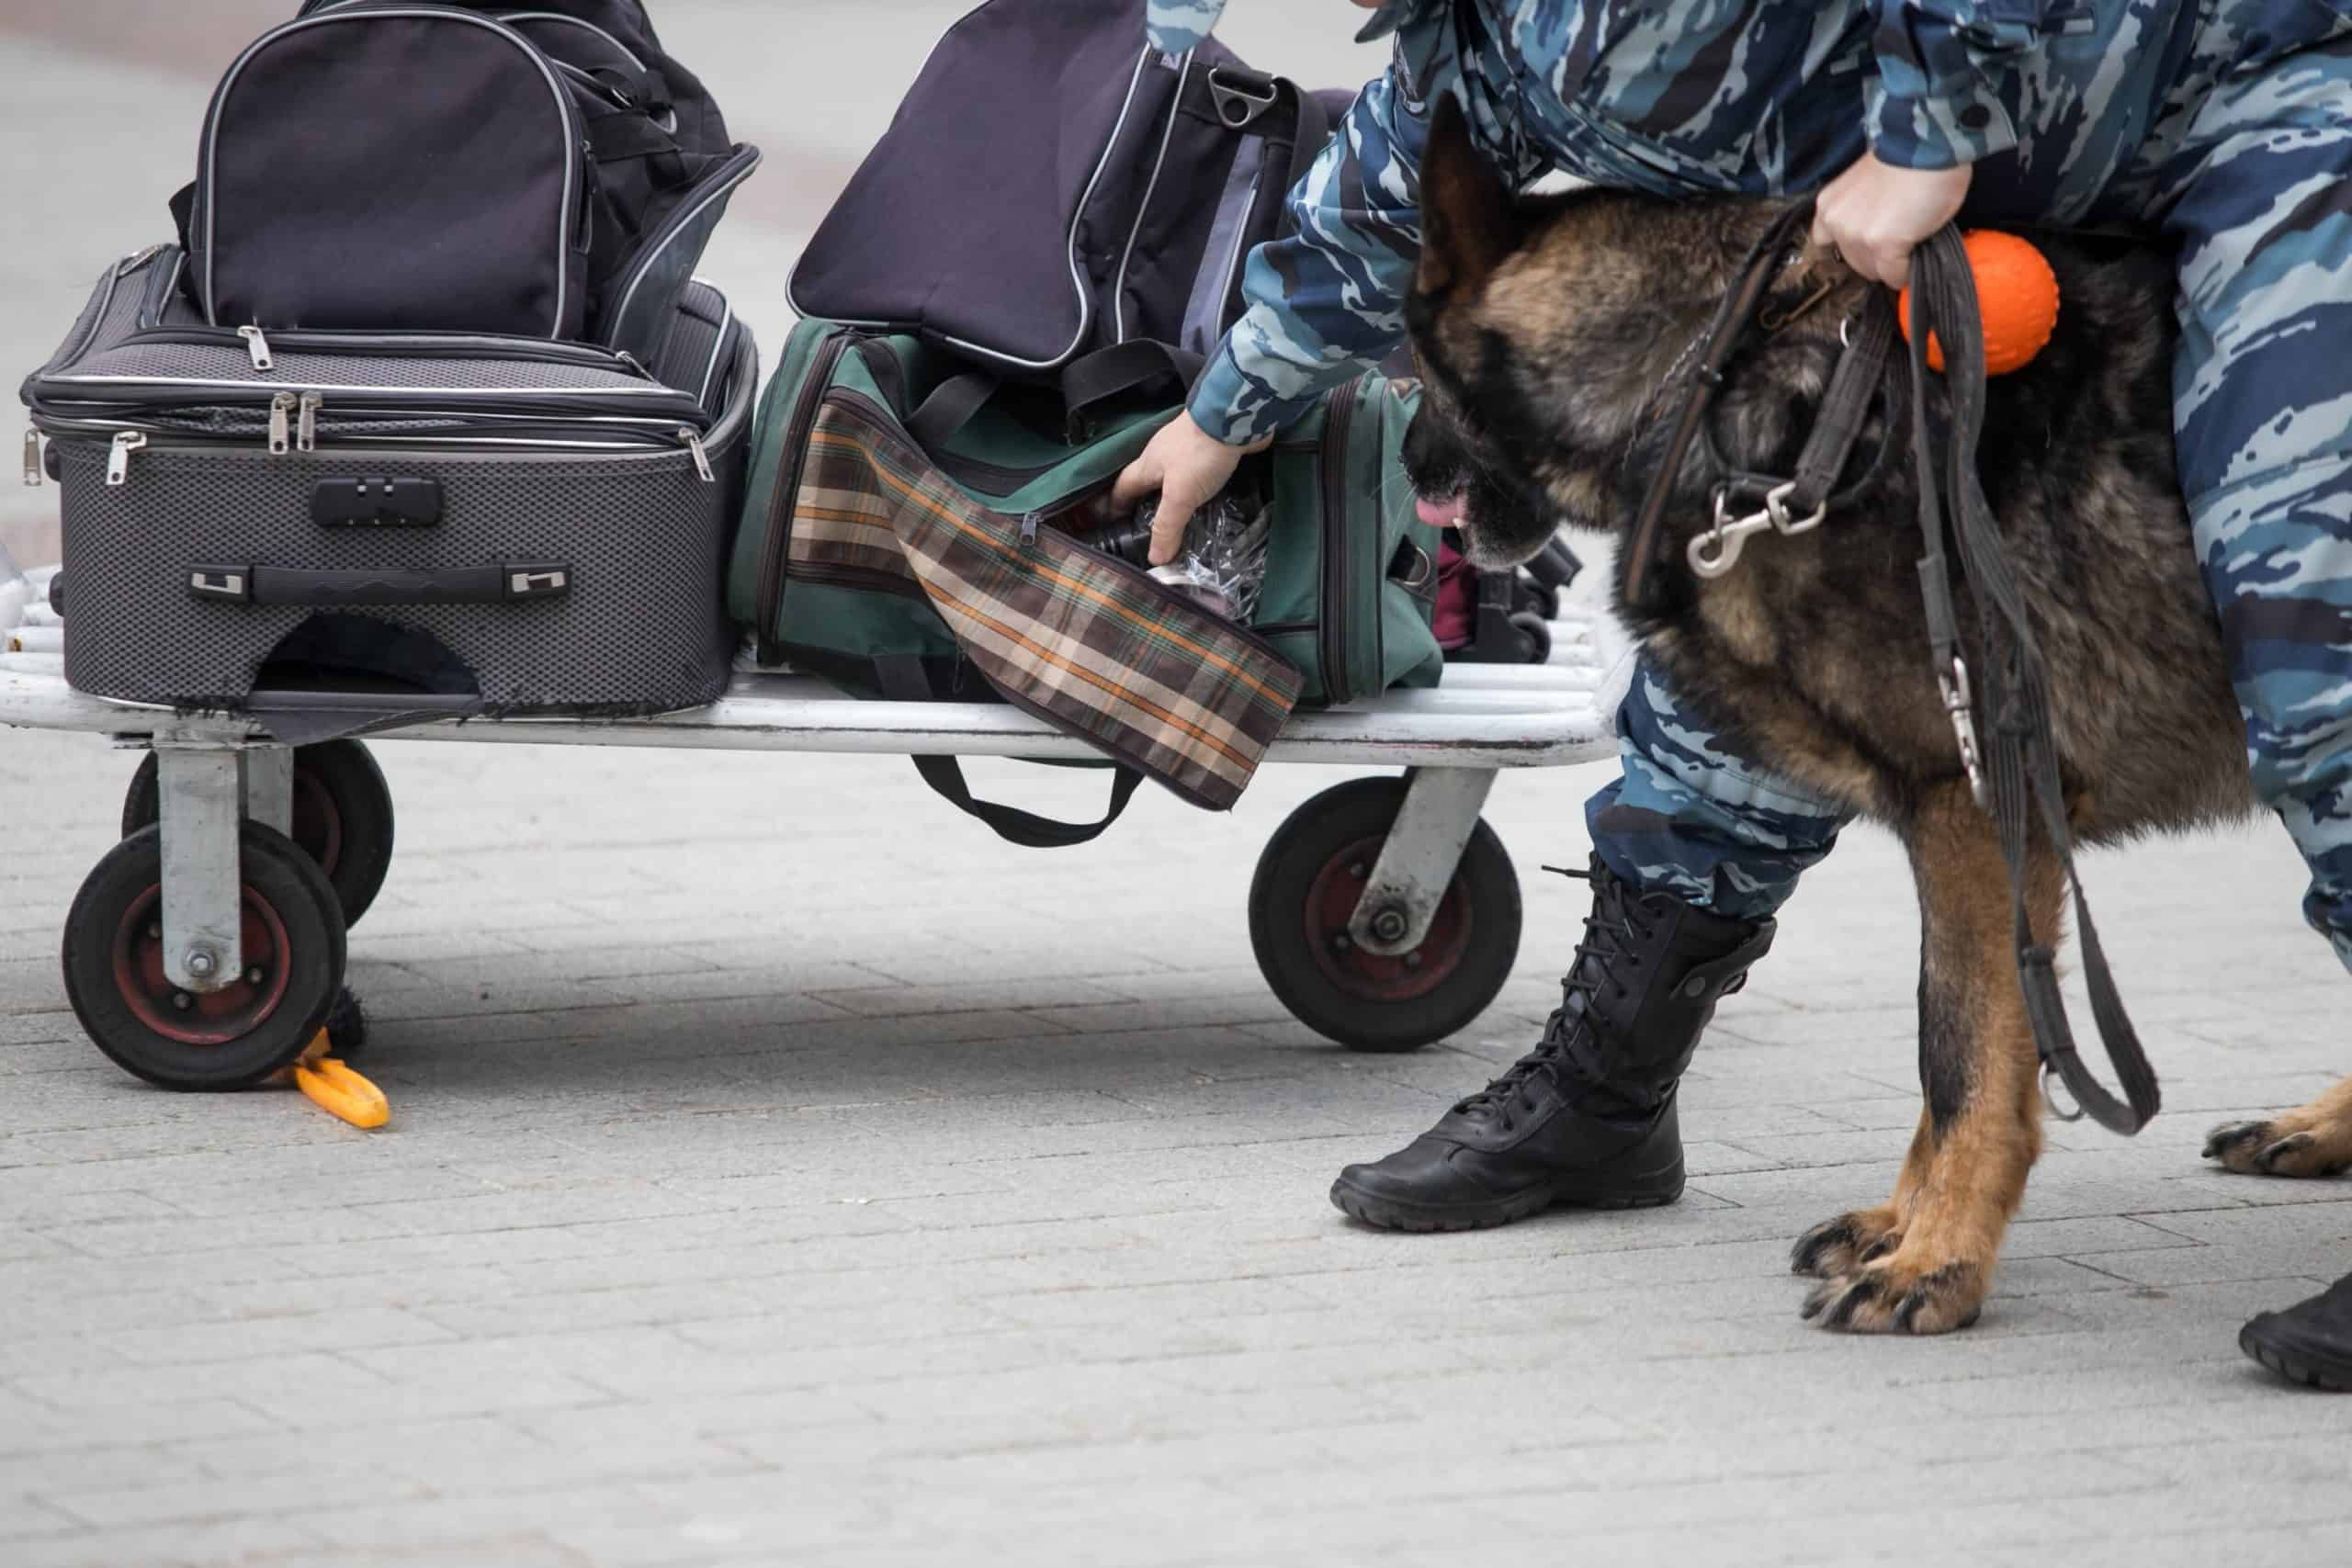 Canine detection dog checks luggage. Nose work for dogs uses canine's powerful scent receptors to fight crime, track poachers, save avalanche victims, and find truffles.